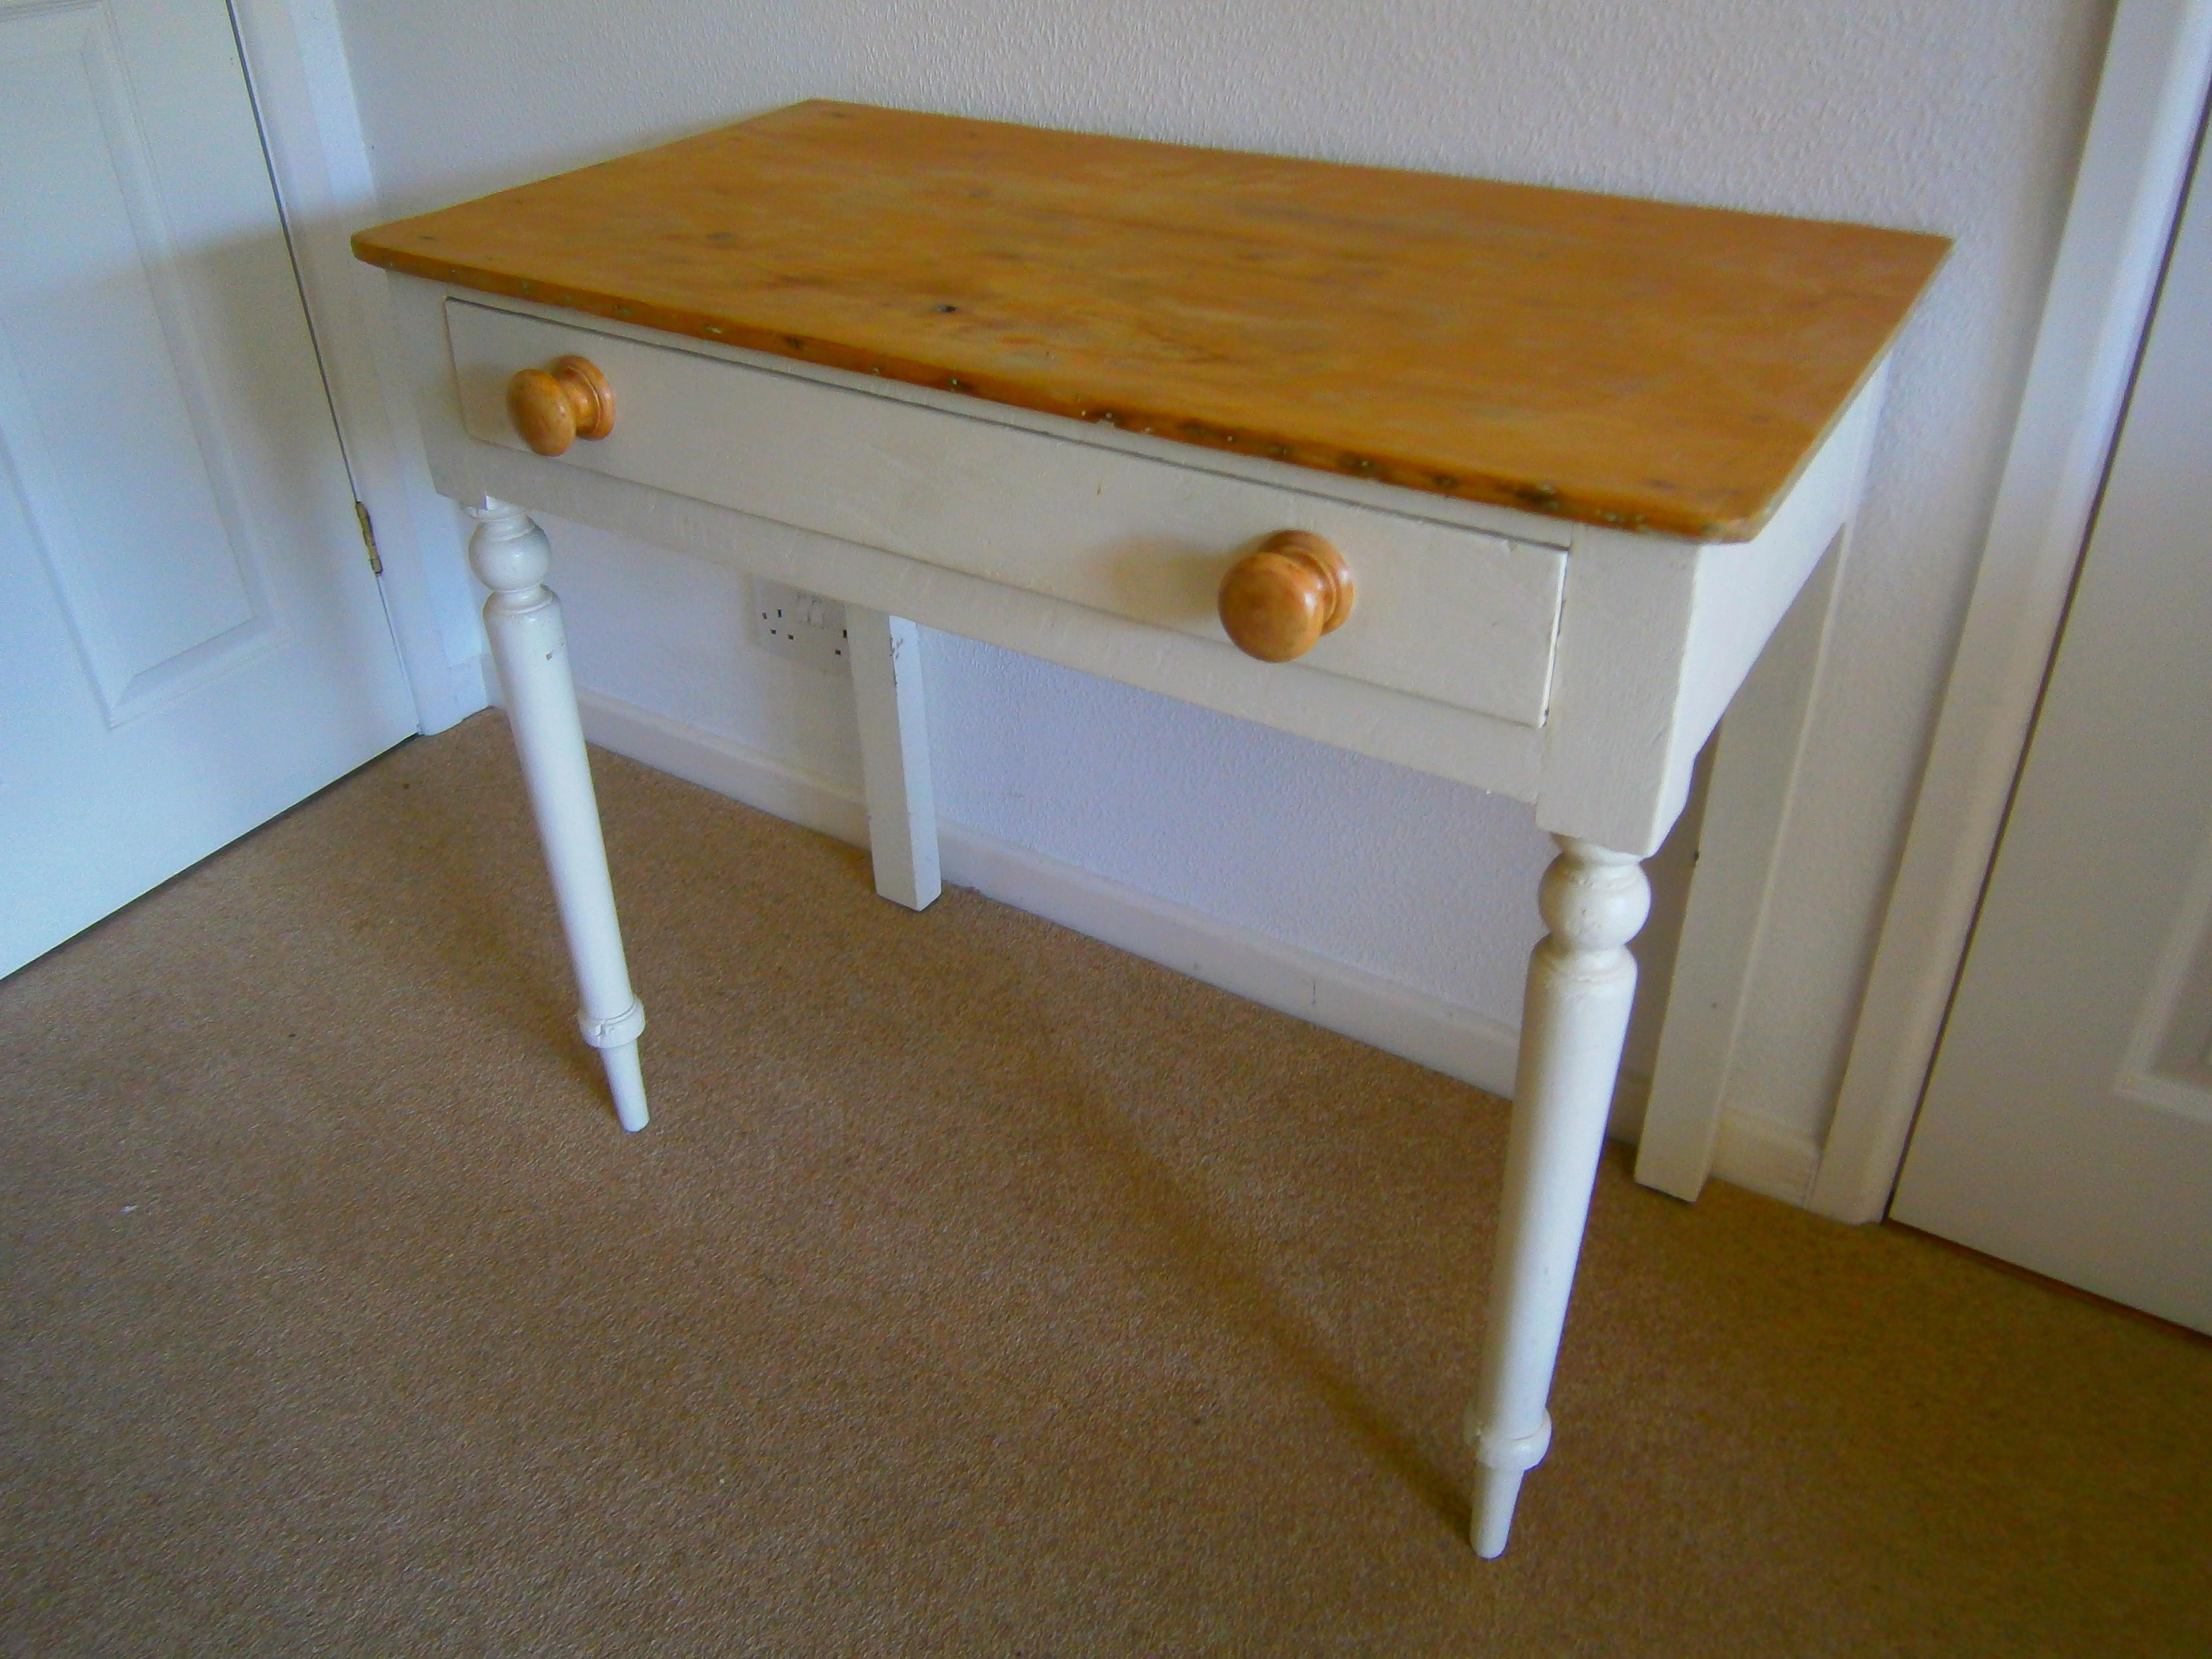 Antique Kitchen Side Table - 83 x 44 cm with a single drawer